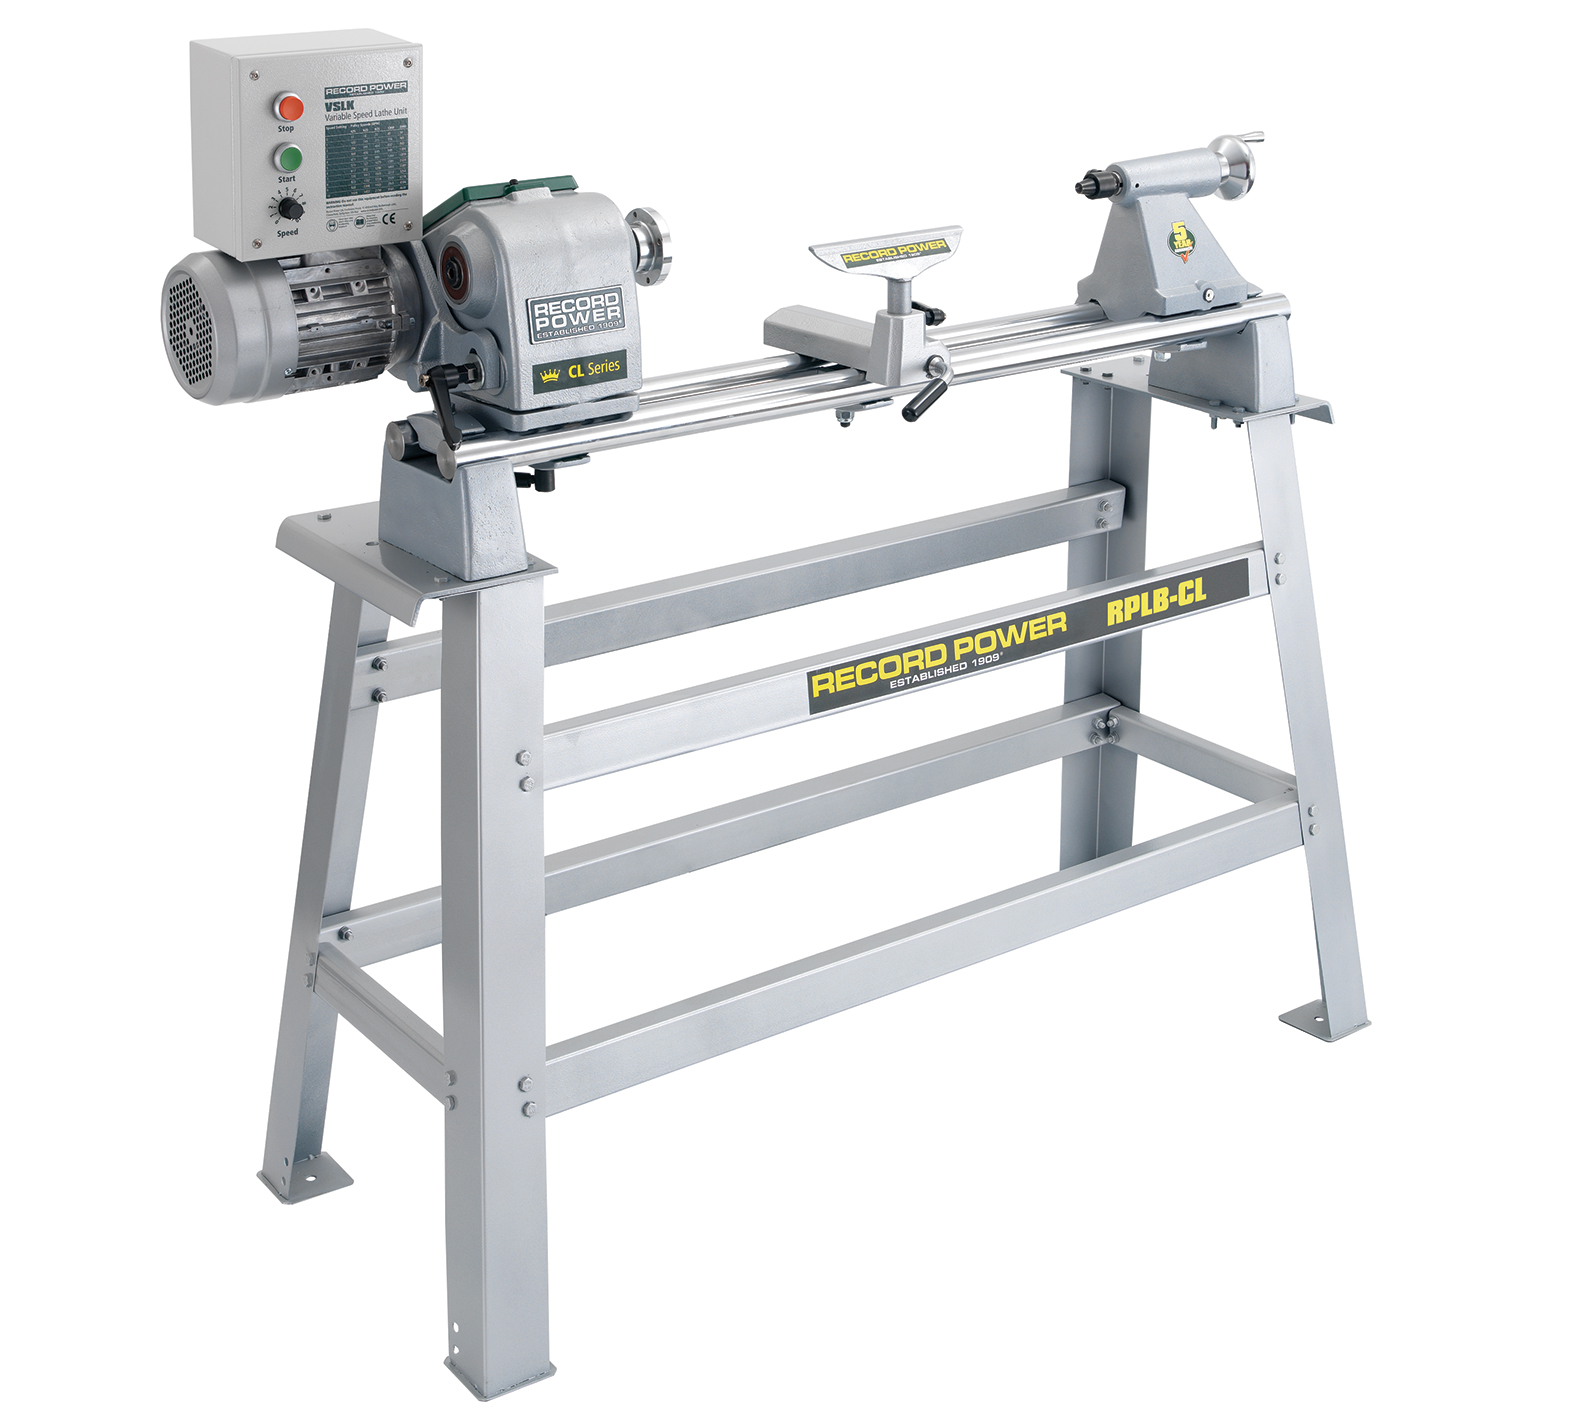 CL4-PK/A Professional Electronic Variable Speed Lathe and Stand Package